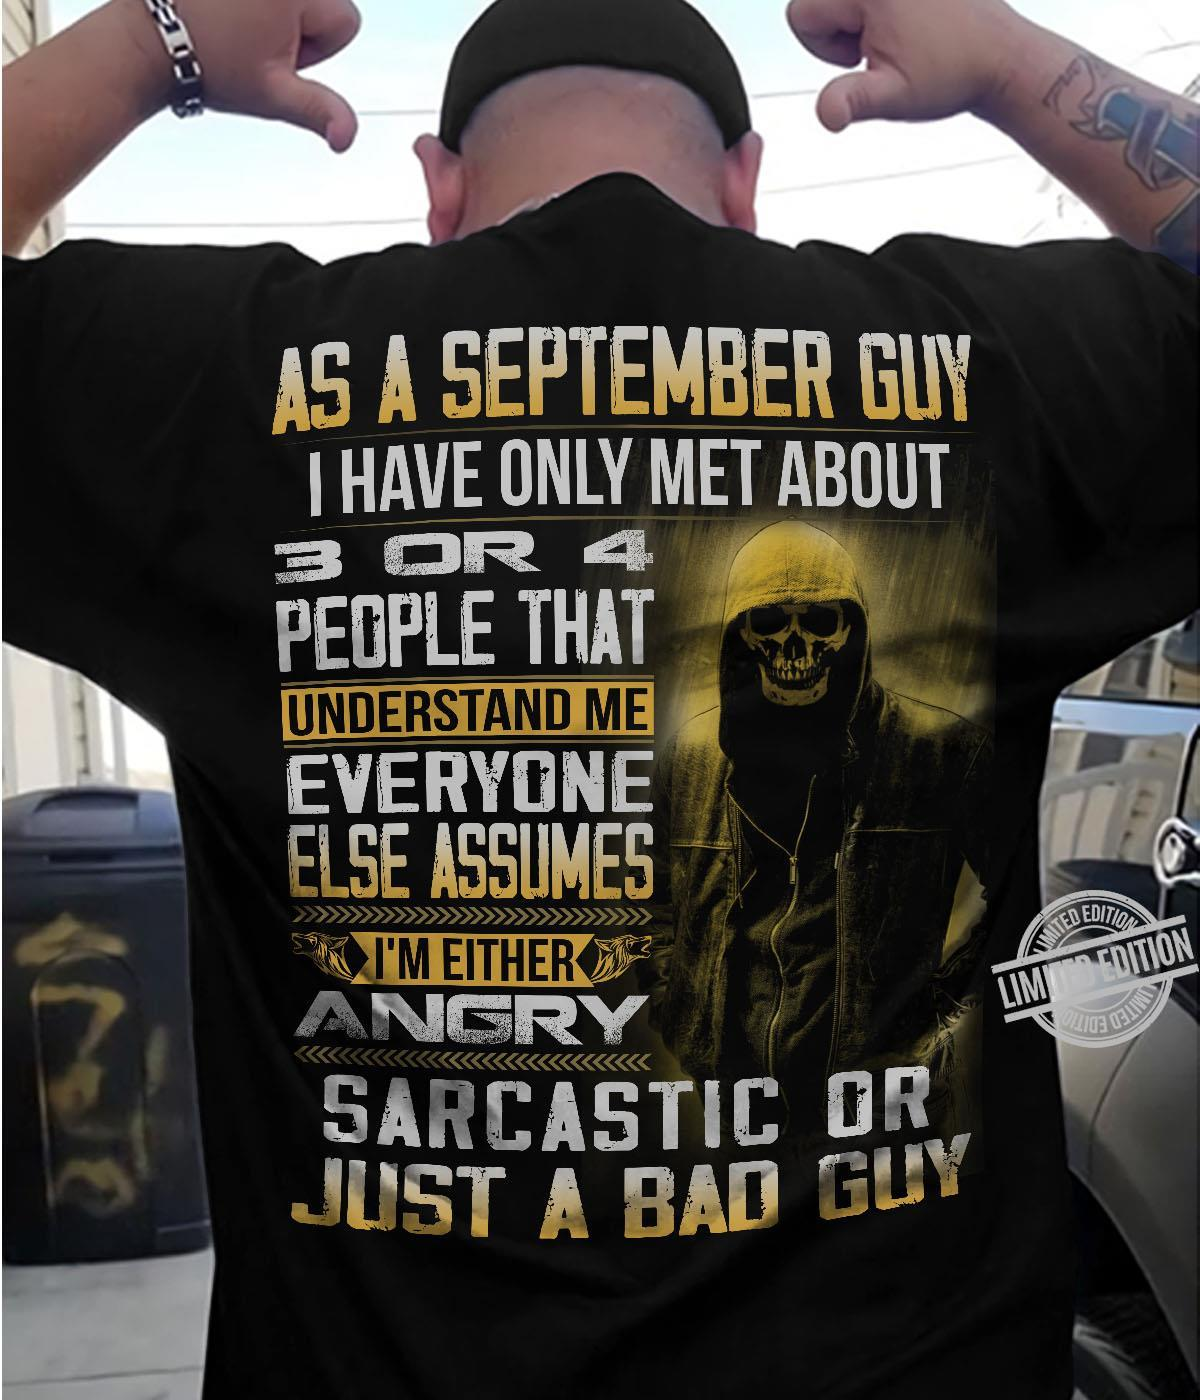 As A September Guy I Have Only Met About 3 Or 4 People That Understand Me Everyone Else Assumes I'm Either Angry Sarcastic Or Just A Bad Guy Shirt